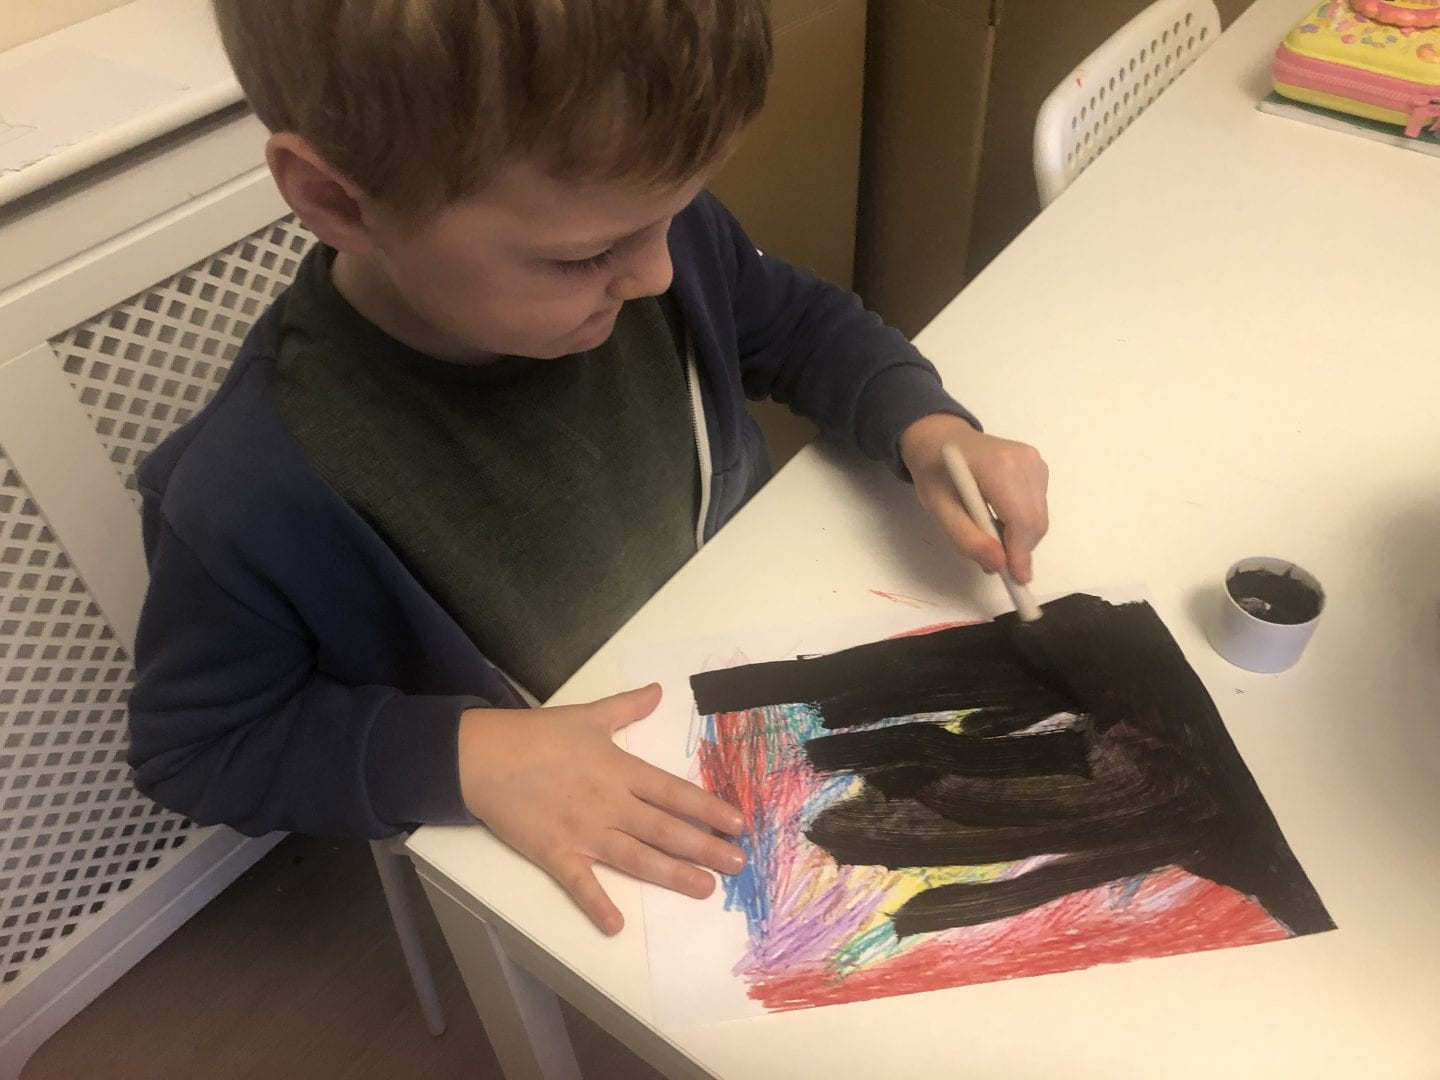 Painting the black paint mix over the sheet of paper that has been coloured in with crayons